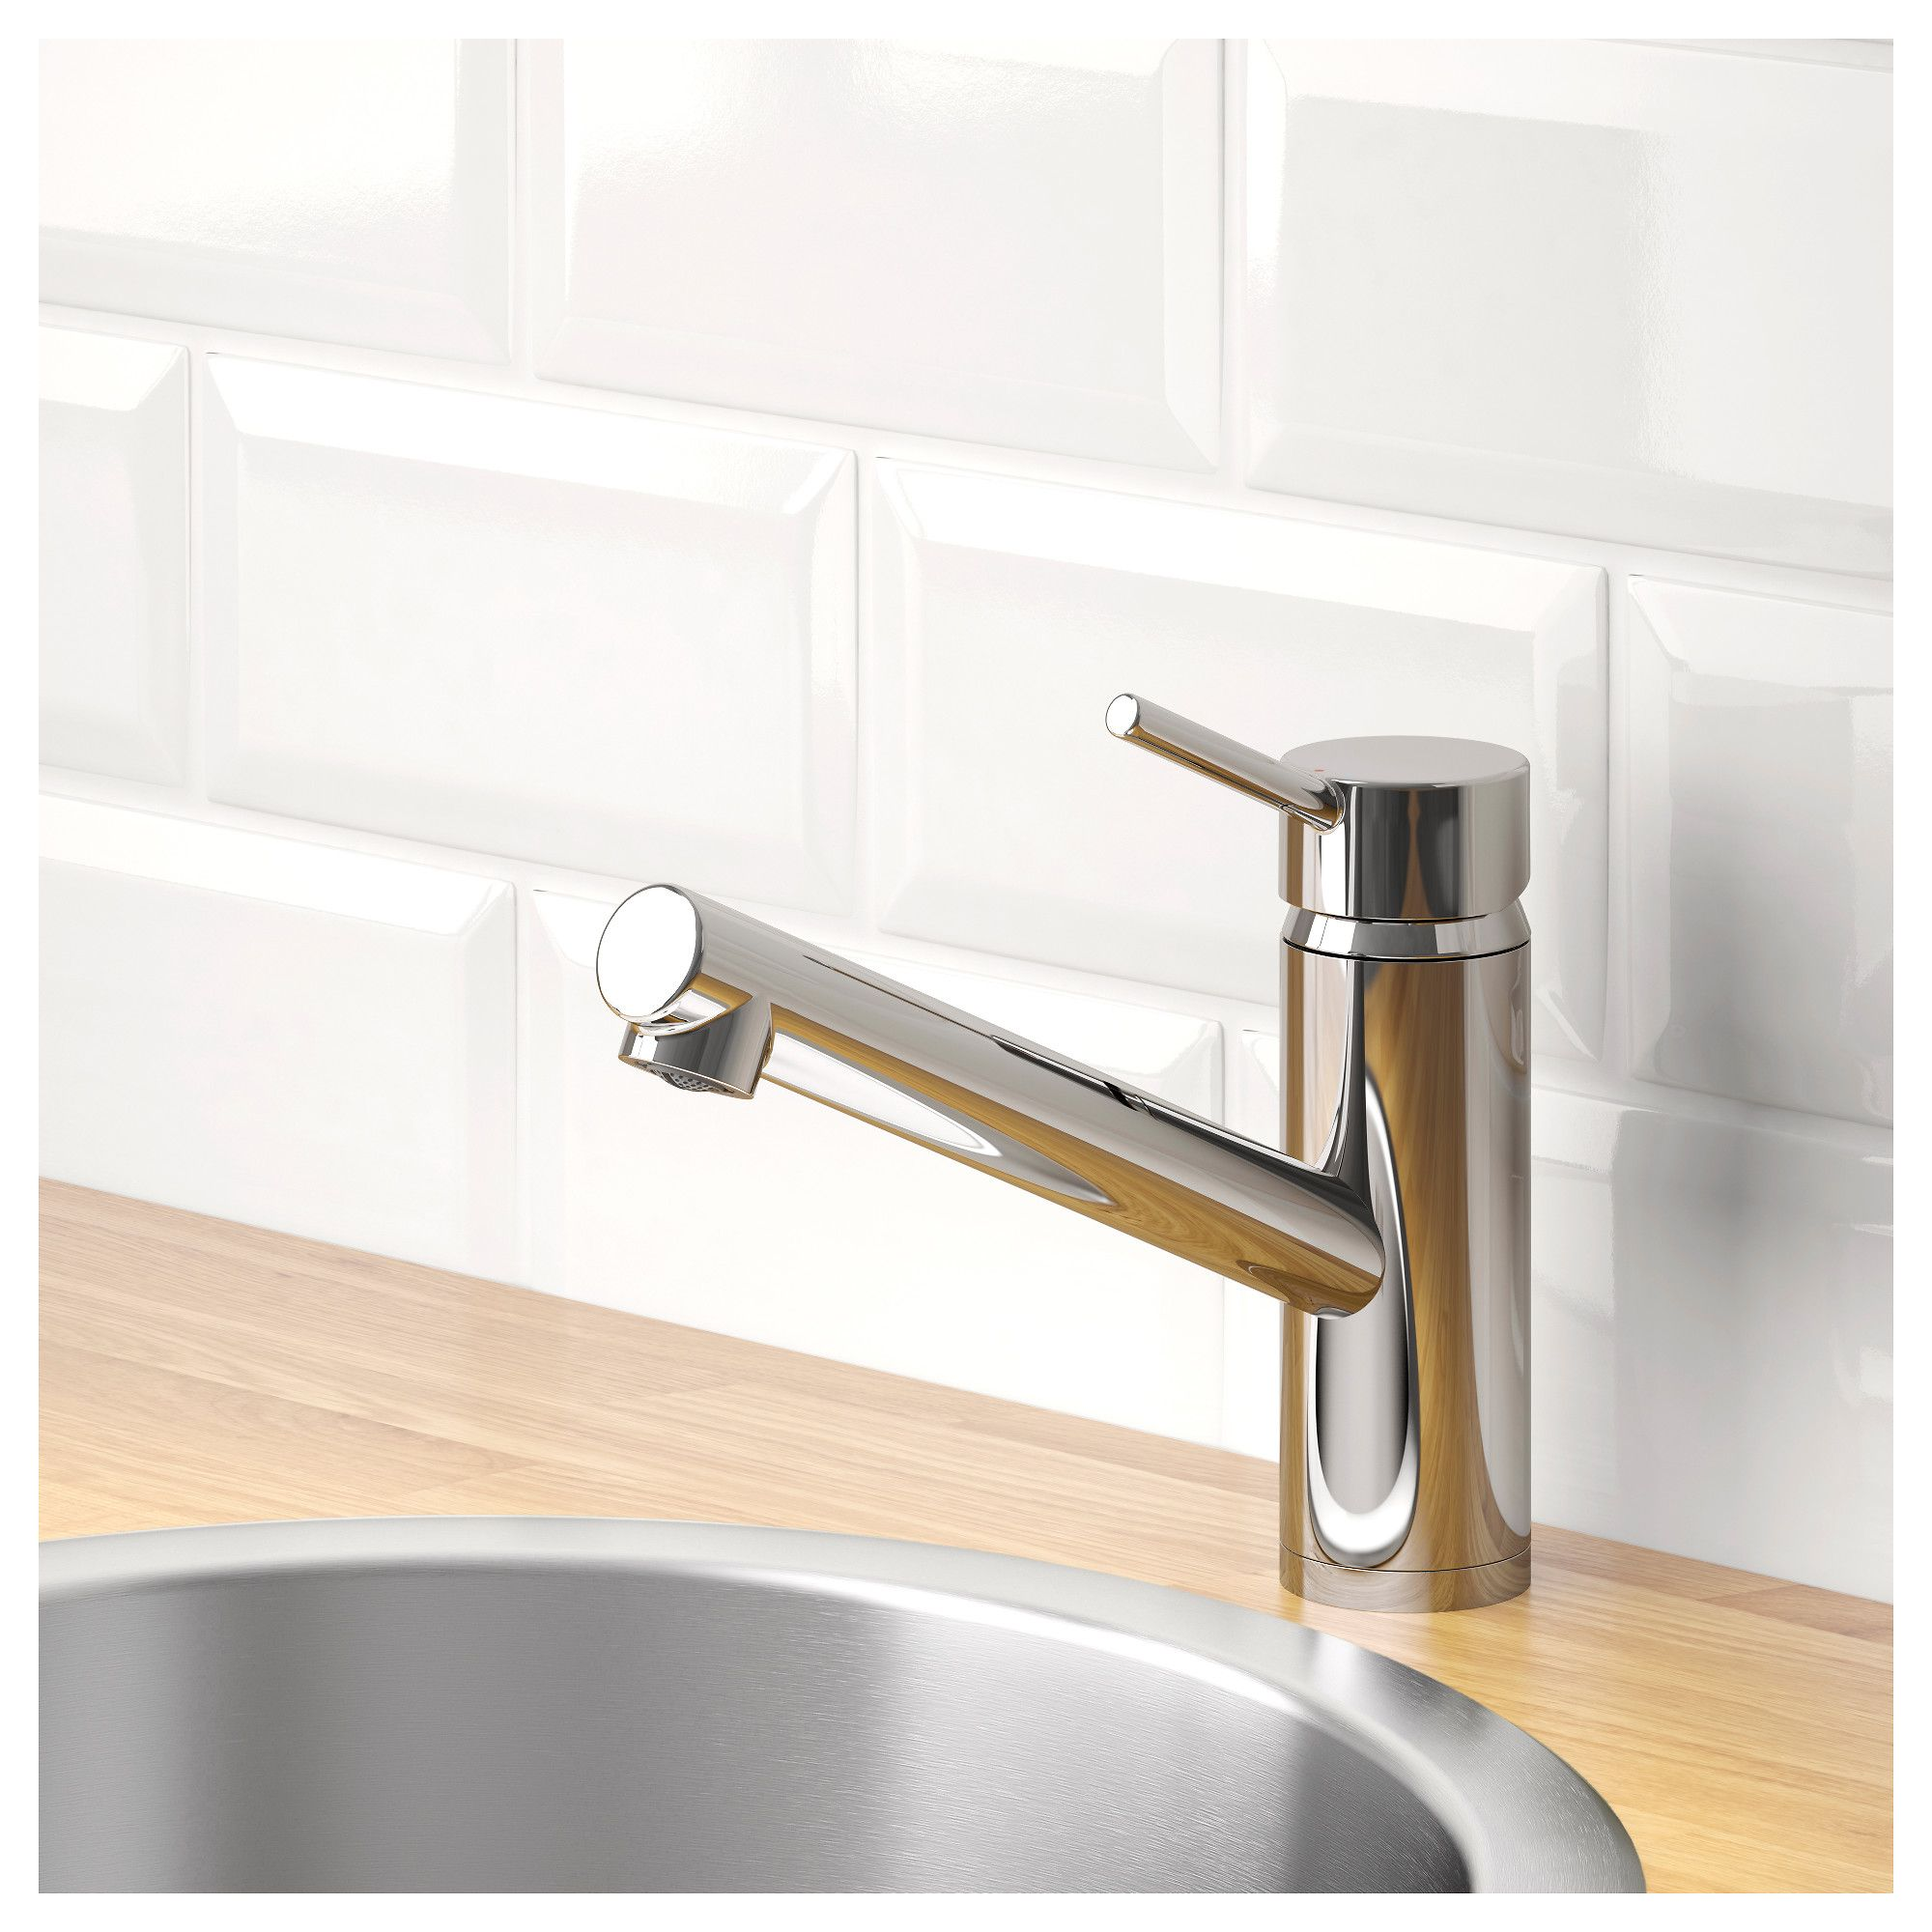 Yttran kitchen faucet chrome plated in products pinterest